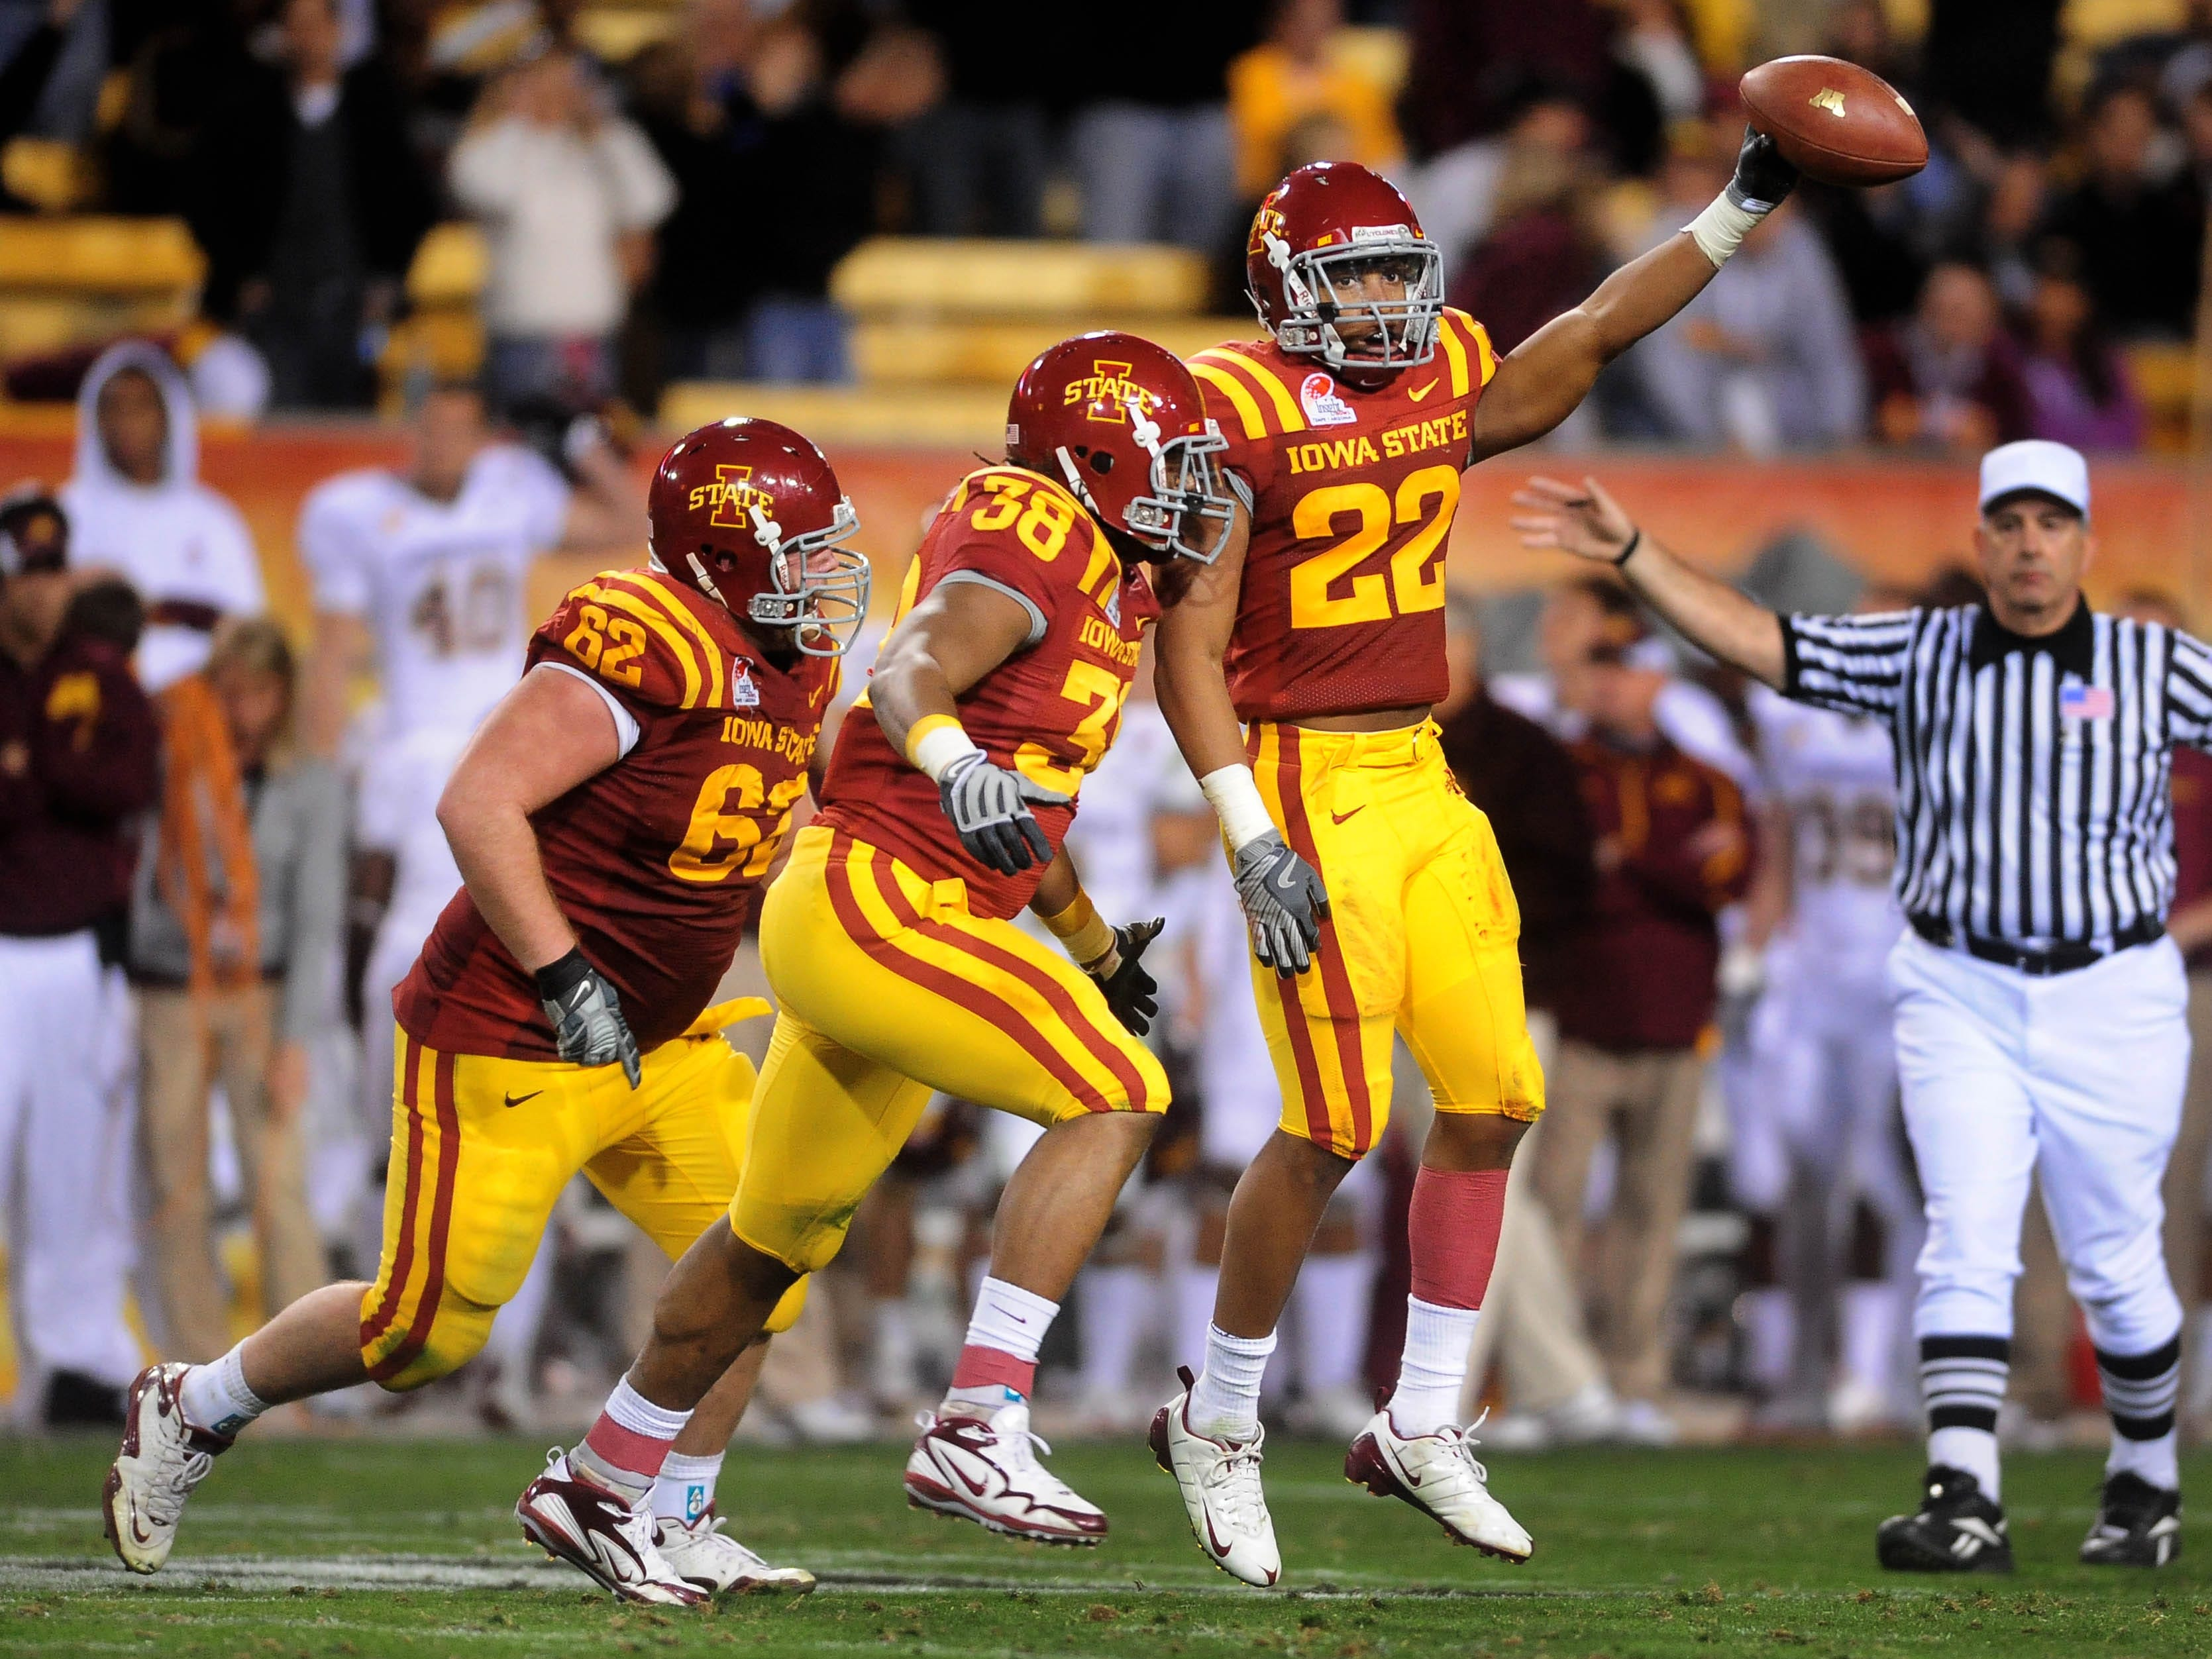 Dec 31, 2009; Tempe, AZ, USA; Iowa State Cyclones defensive back (22) Ter'ran Benton celebrates a fumble recovery against the Minnesota Golden Gophers in the 2009 Insight Bowl at Sun Devil Stadium. Iowa State defeated Minnesota 14-13. Mandatory Credit: Mark J. Rebilas-USA TODAY Sports